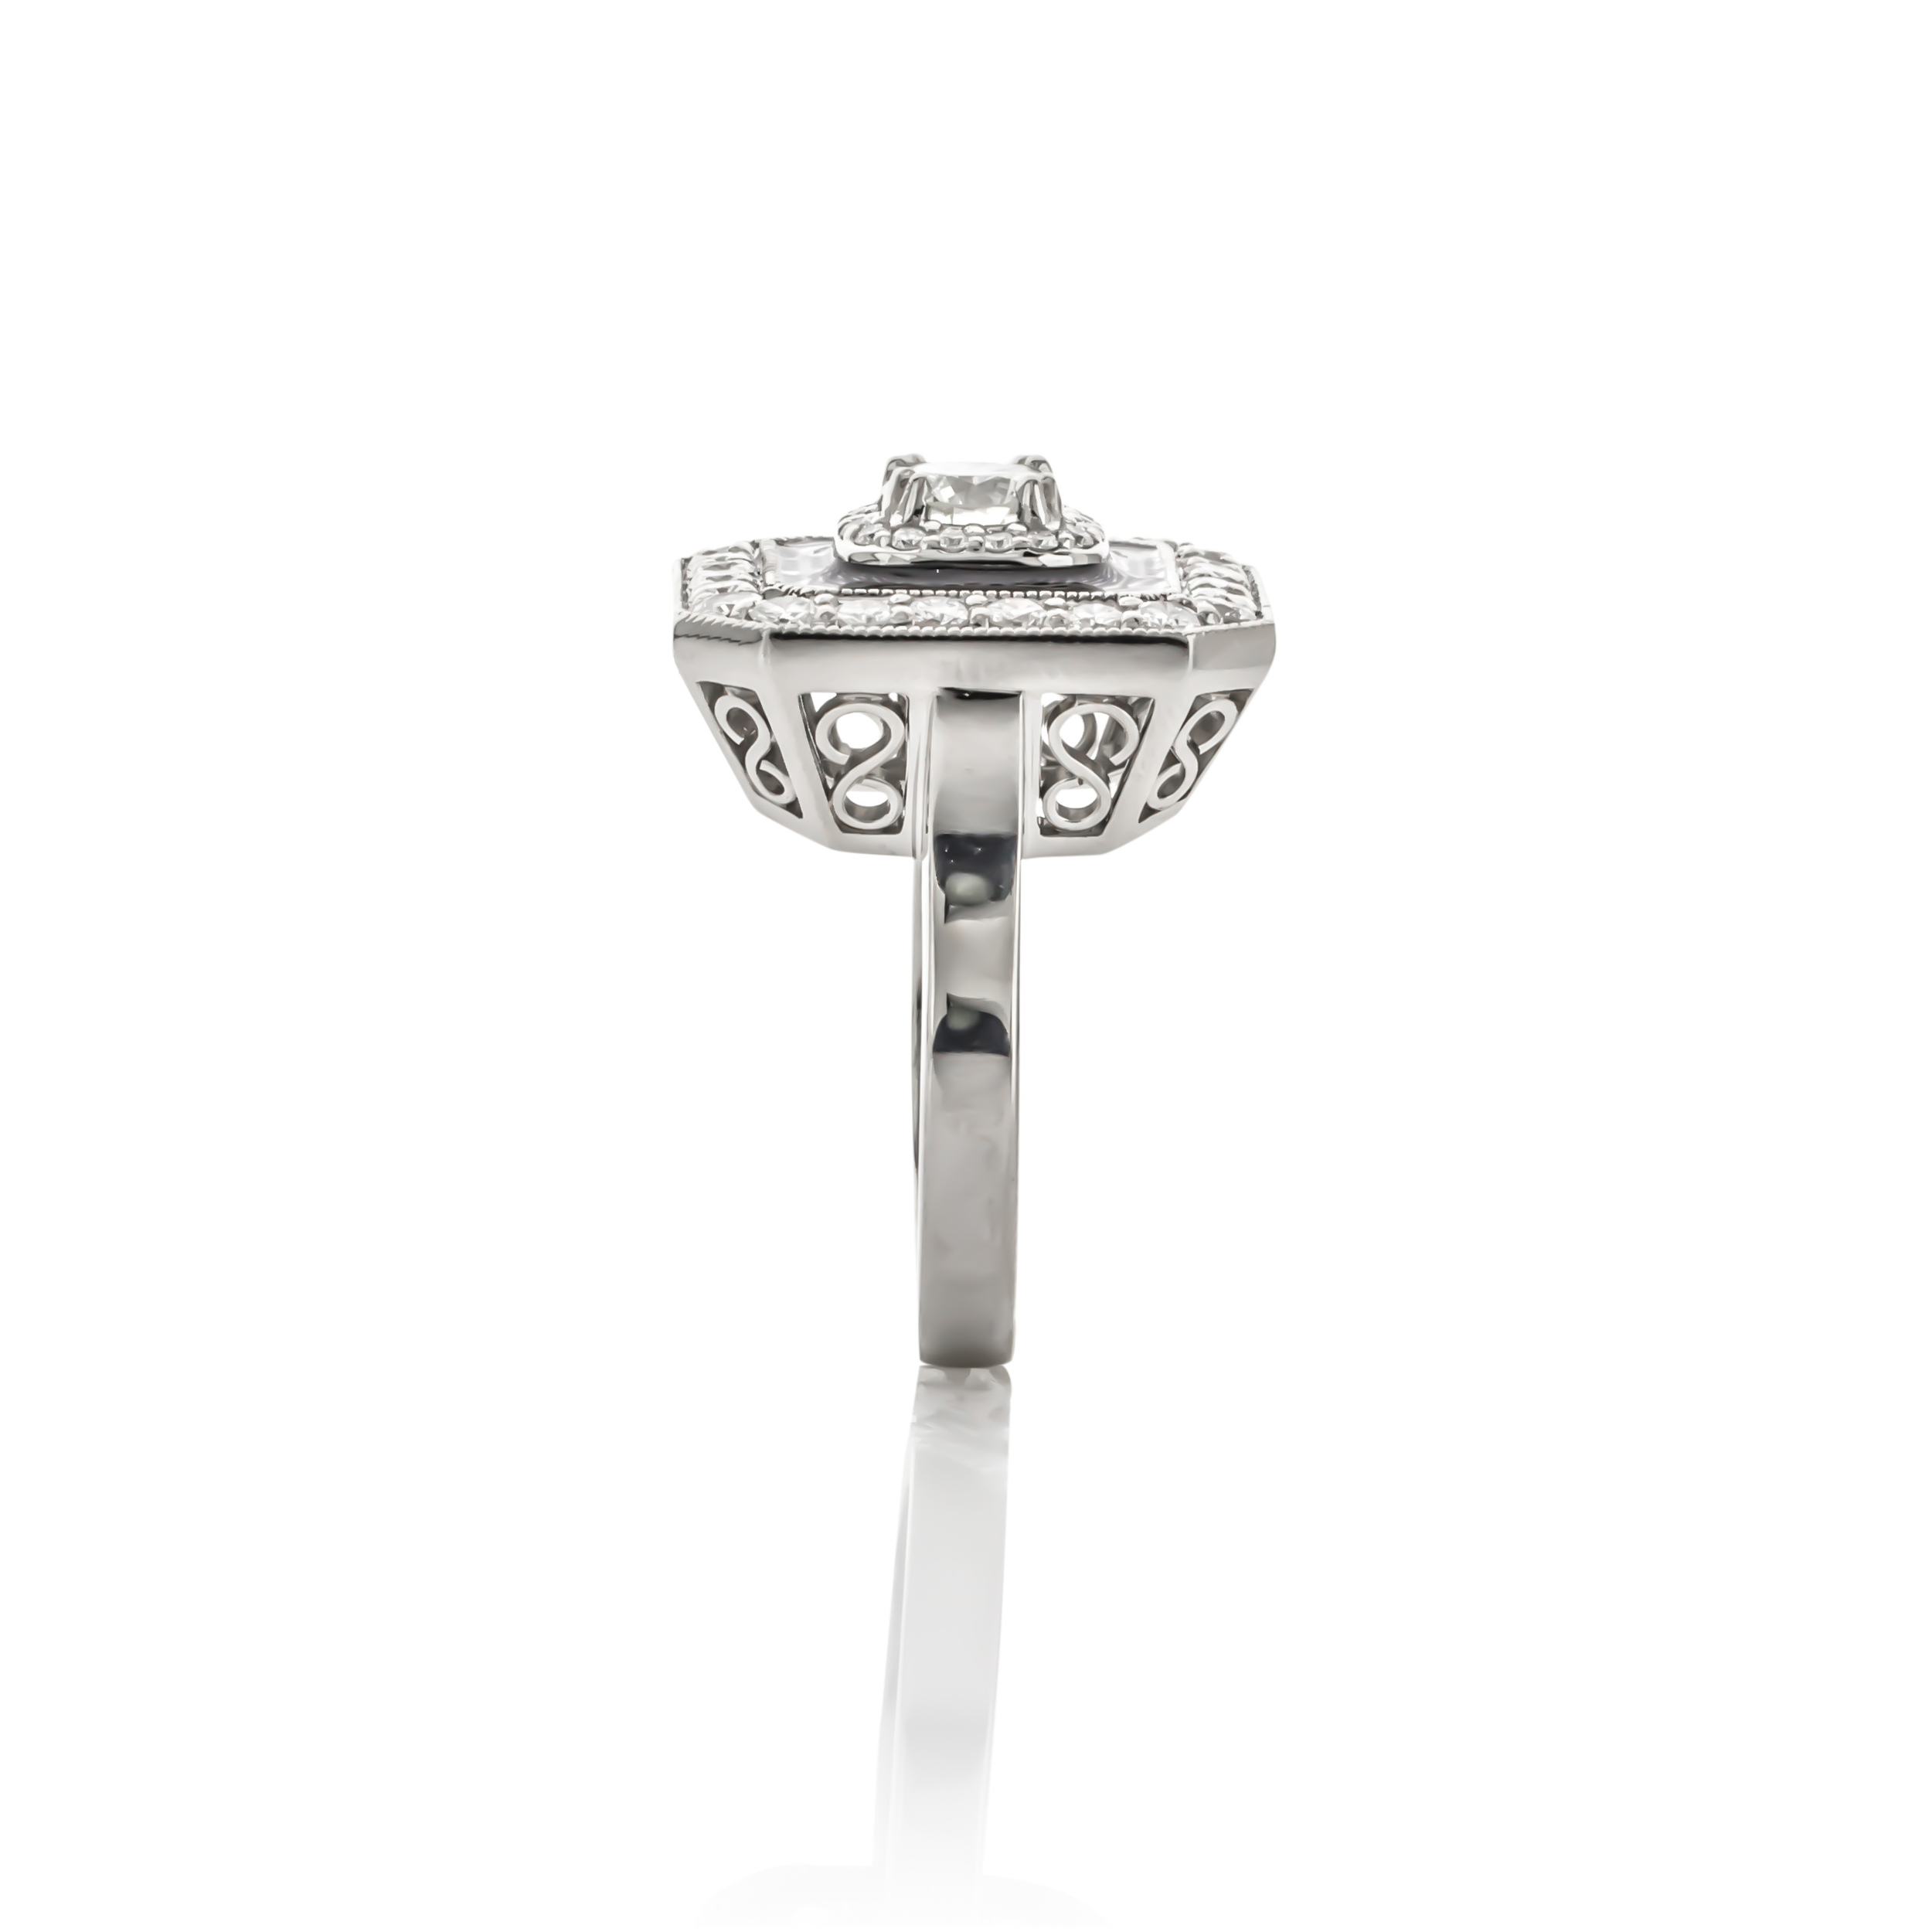 CUSTOM DIAMOND ART DECO RING WITH ENAMELED ACCENT HALO